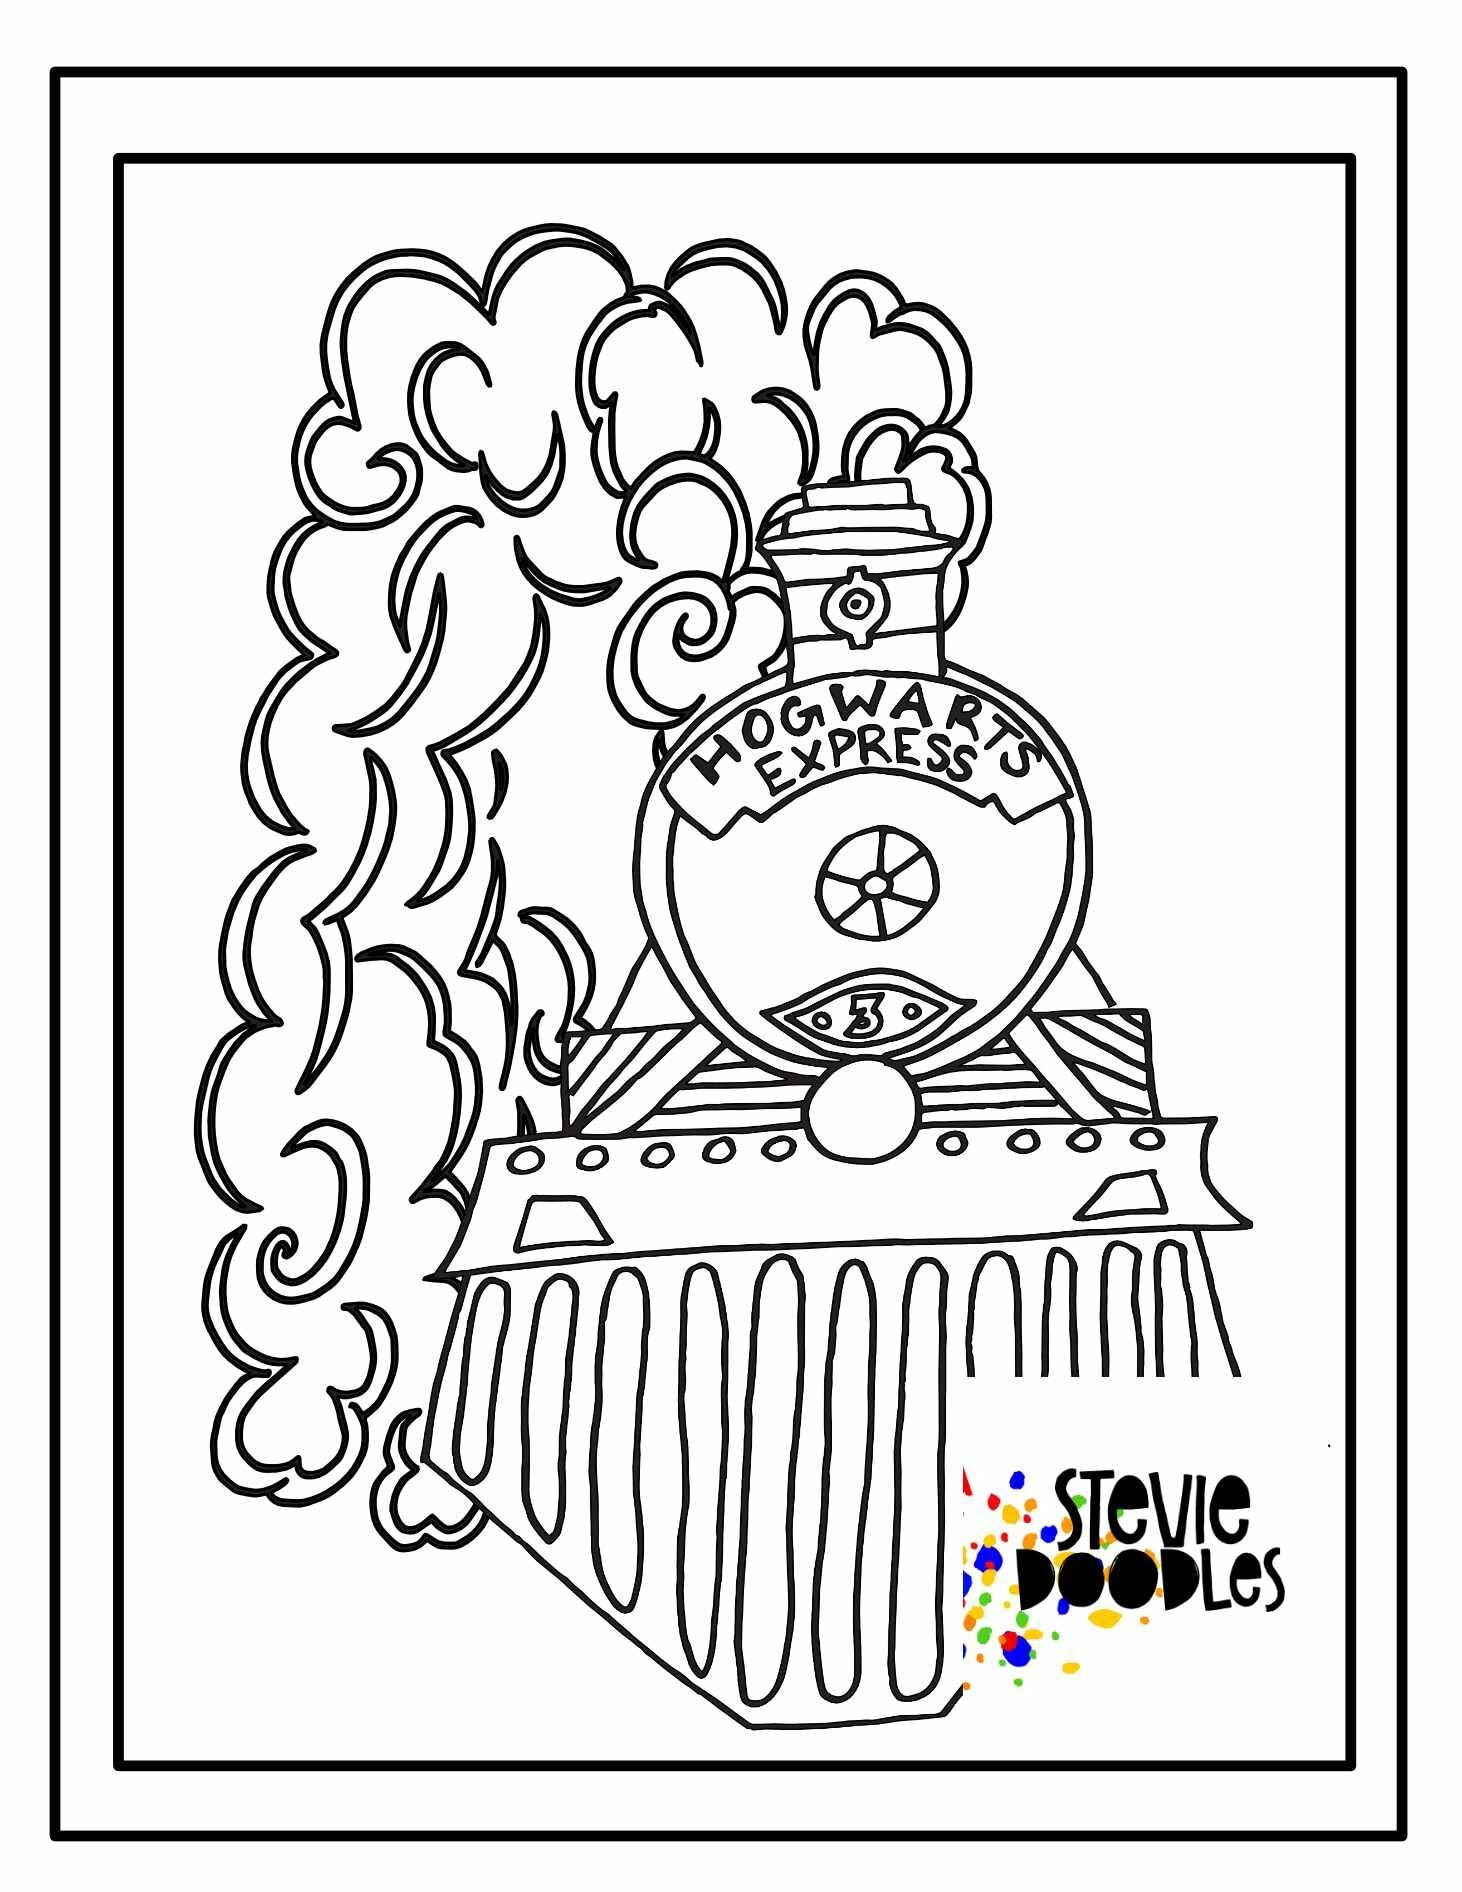 Fantastic Beasts Coloring Pages Free